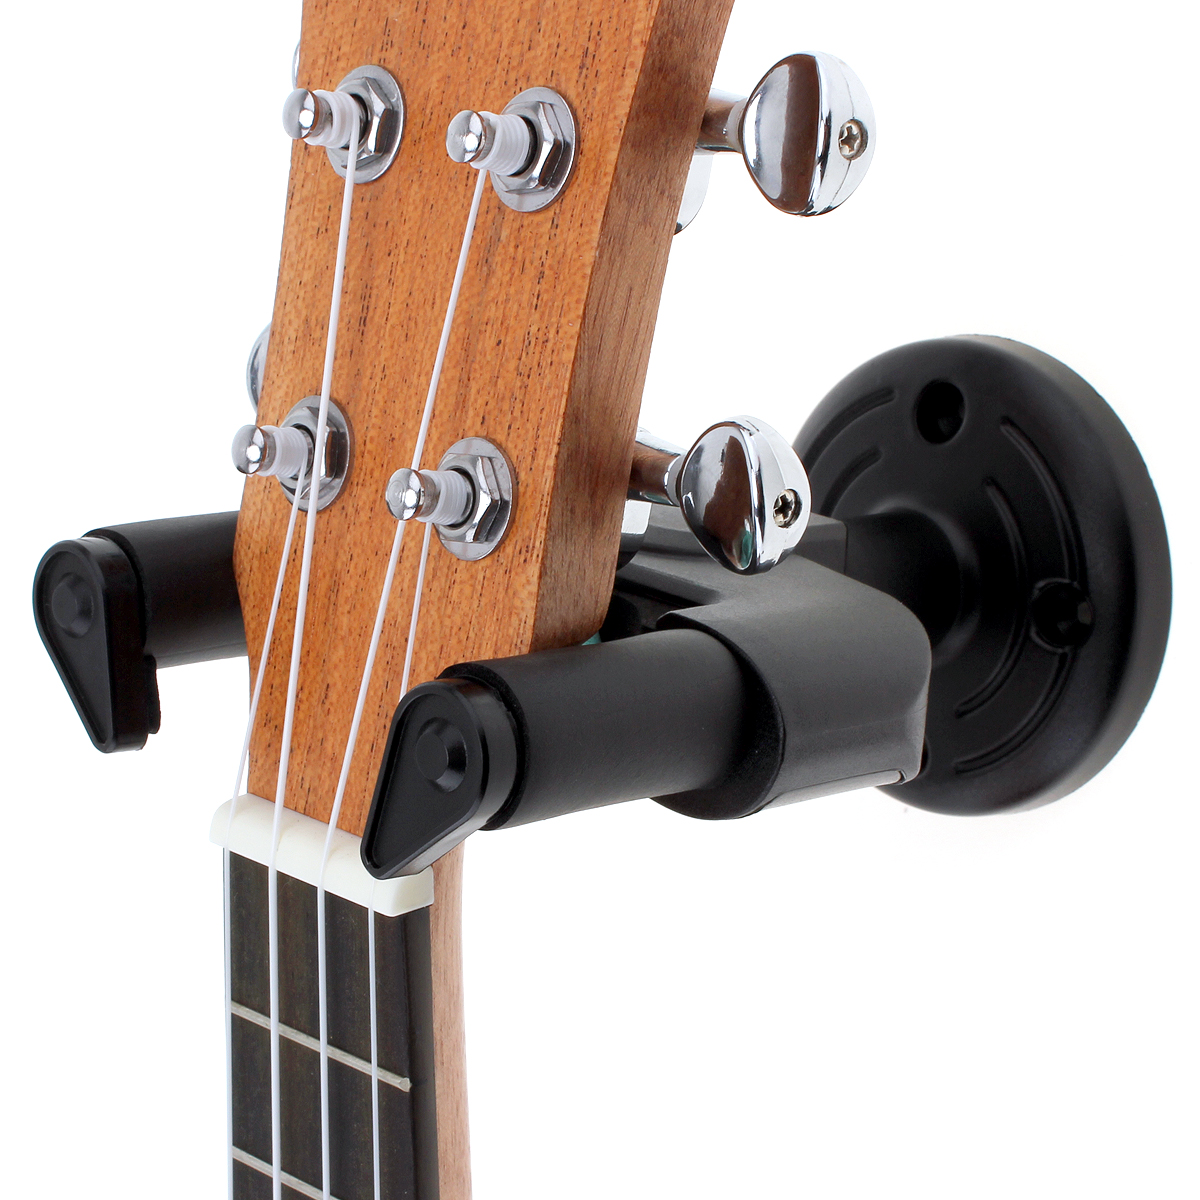 50mm Neck Width Wall Mount Soft Sponge Guitar Hanger Holder with Non-slip Hook for Guitar / Bass / Violin / Mandolin / Ukulele